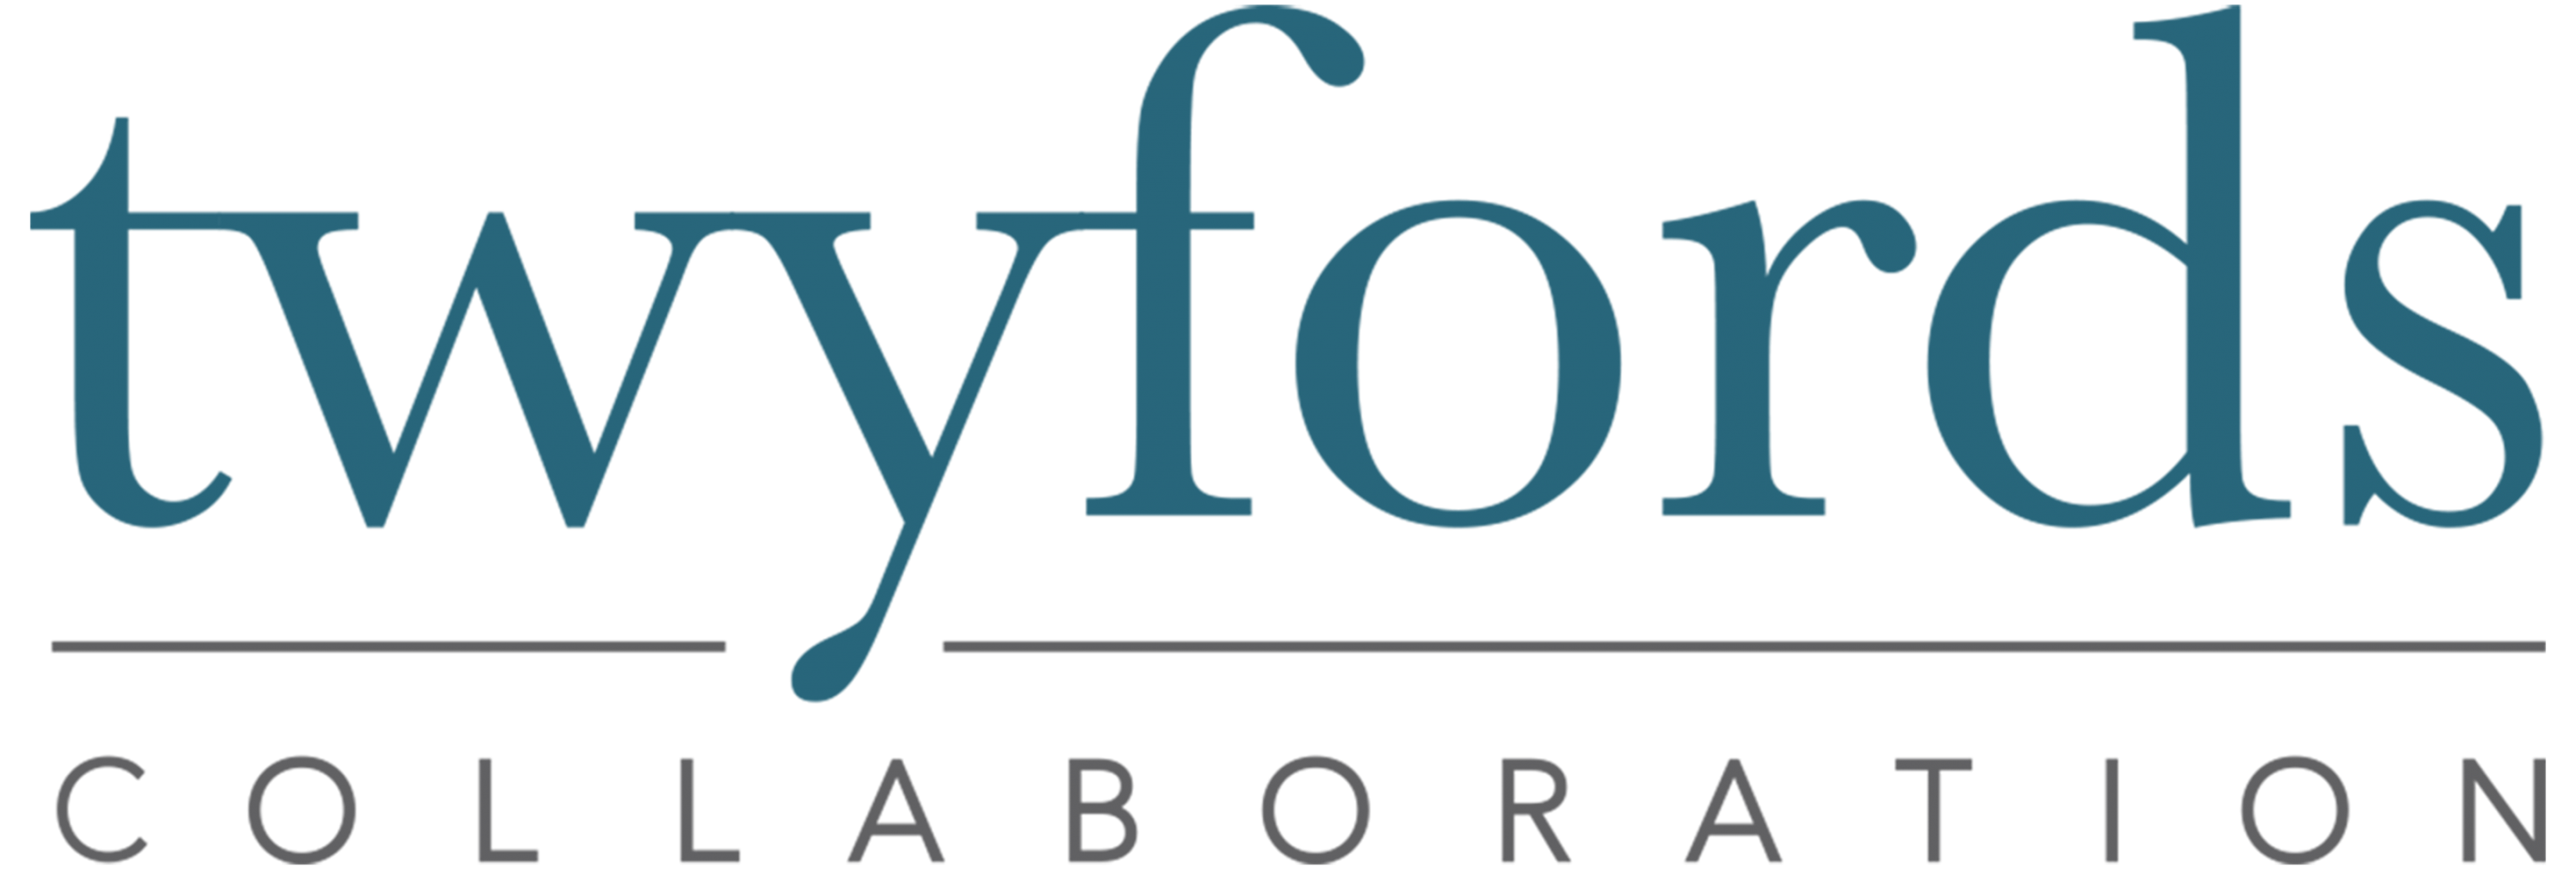 Twyfords Collaboration Logo